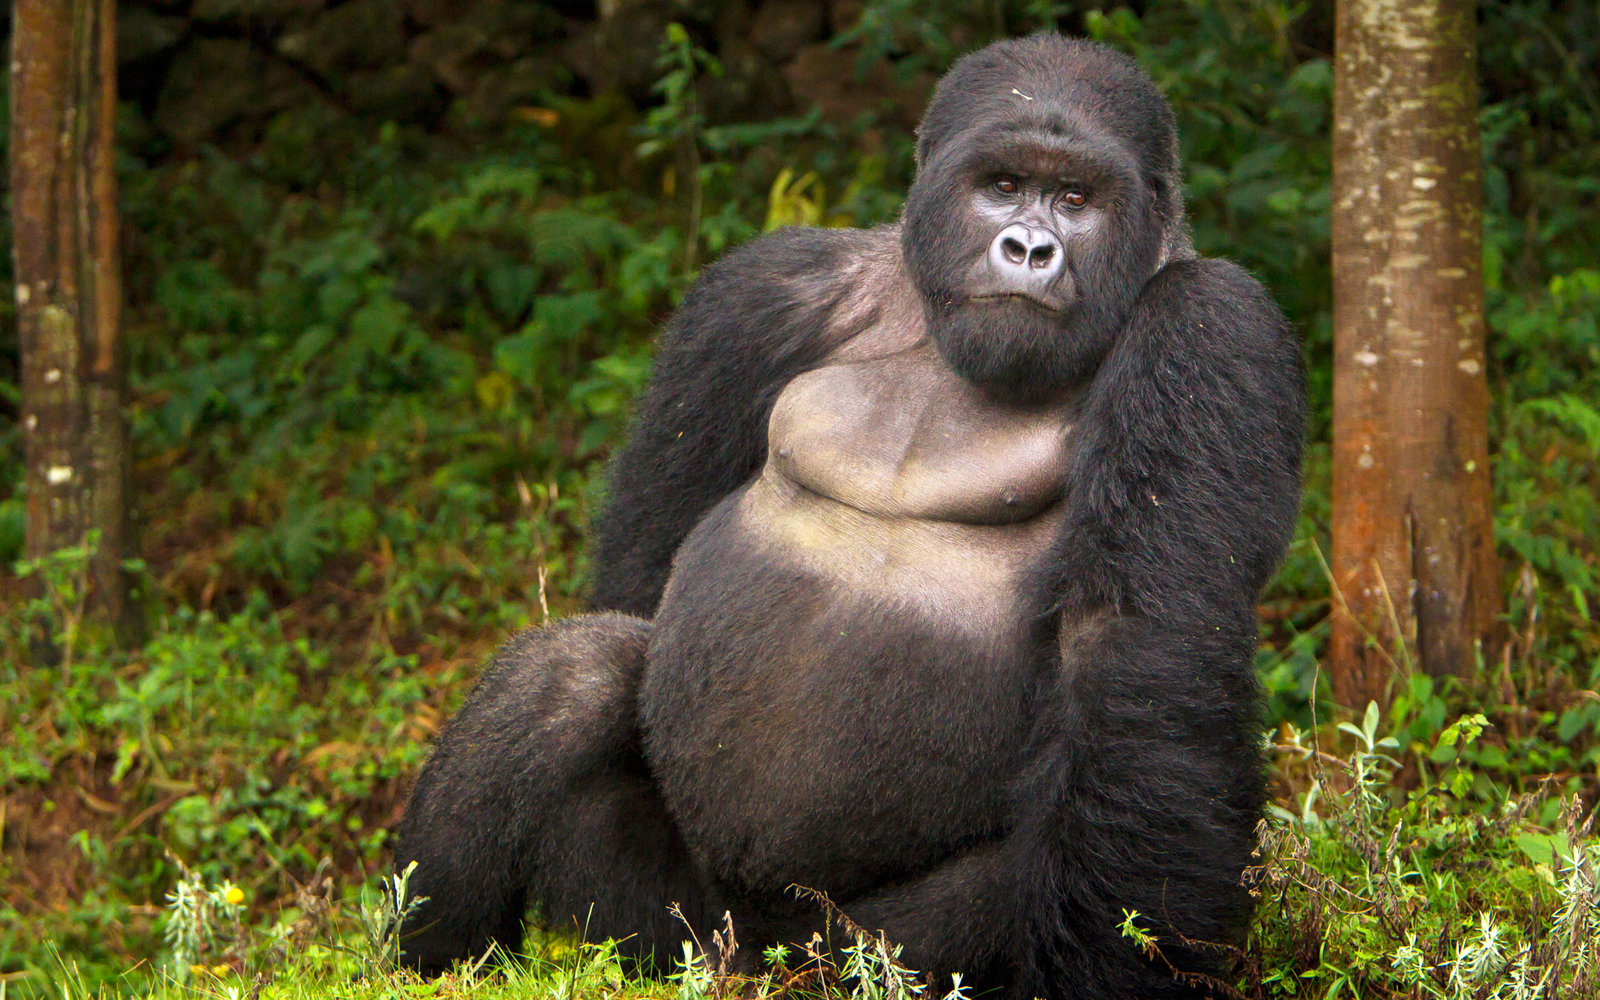 Gorillas Face Greater Threat While Pandas Move Off 'Endangered' Species List